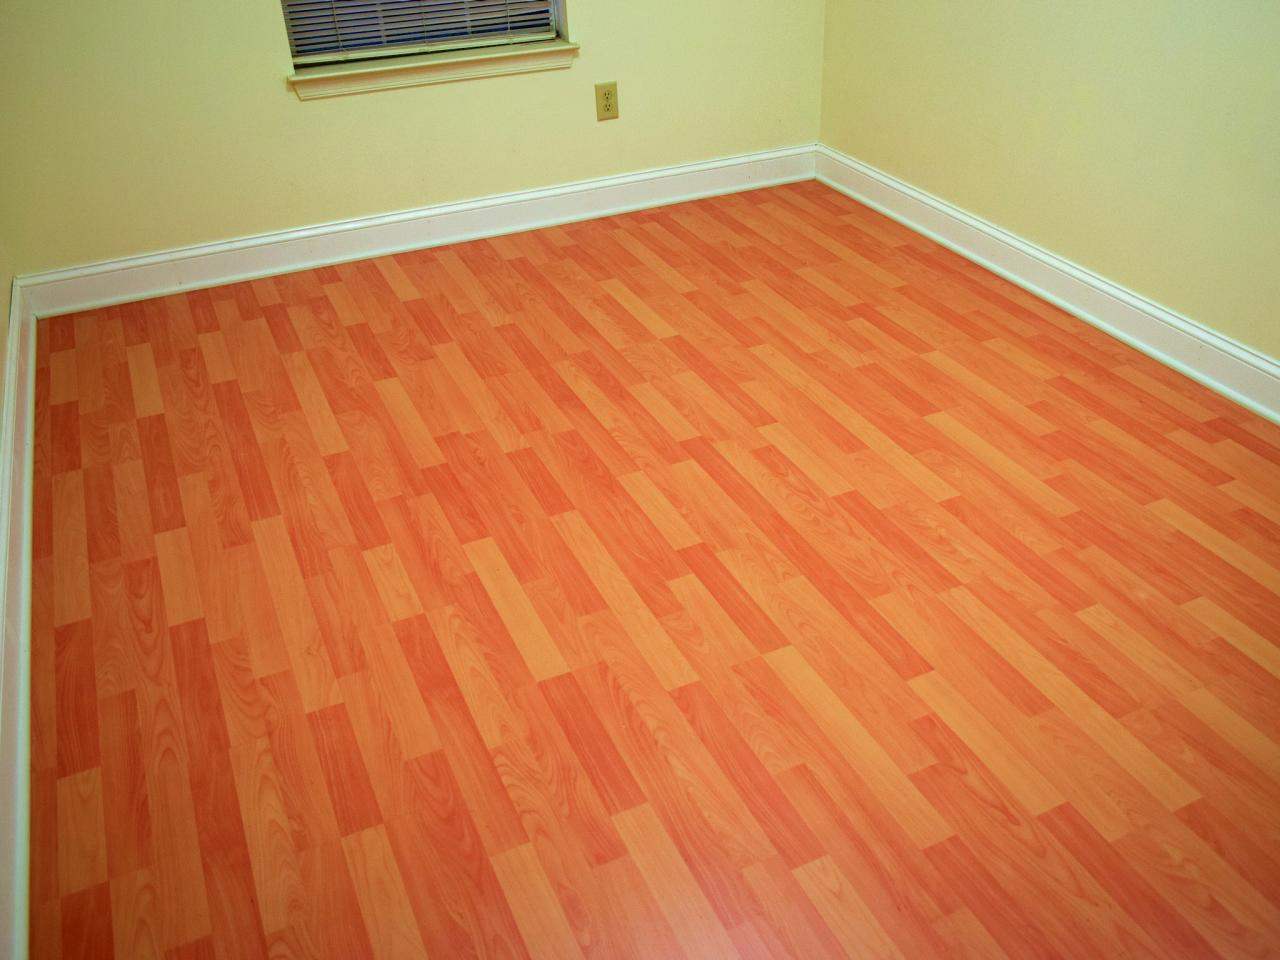 How to install a laminate floor how tos diy - Laminate or wood flooring ...